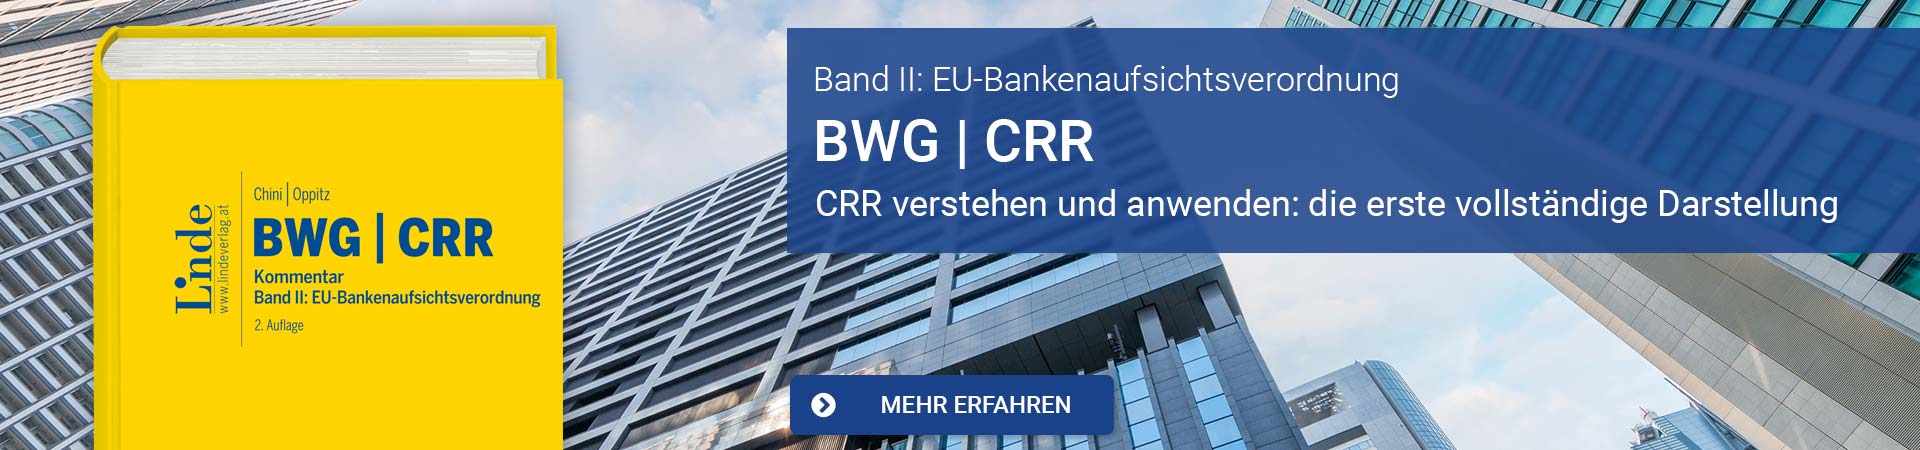 BWG | CRR